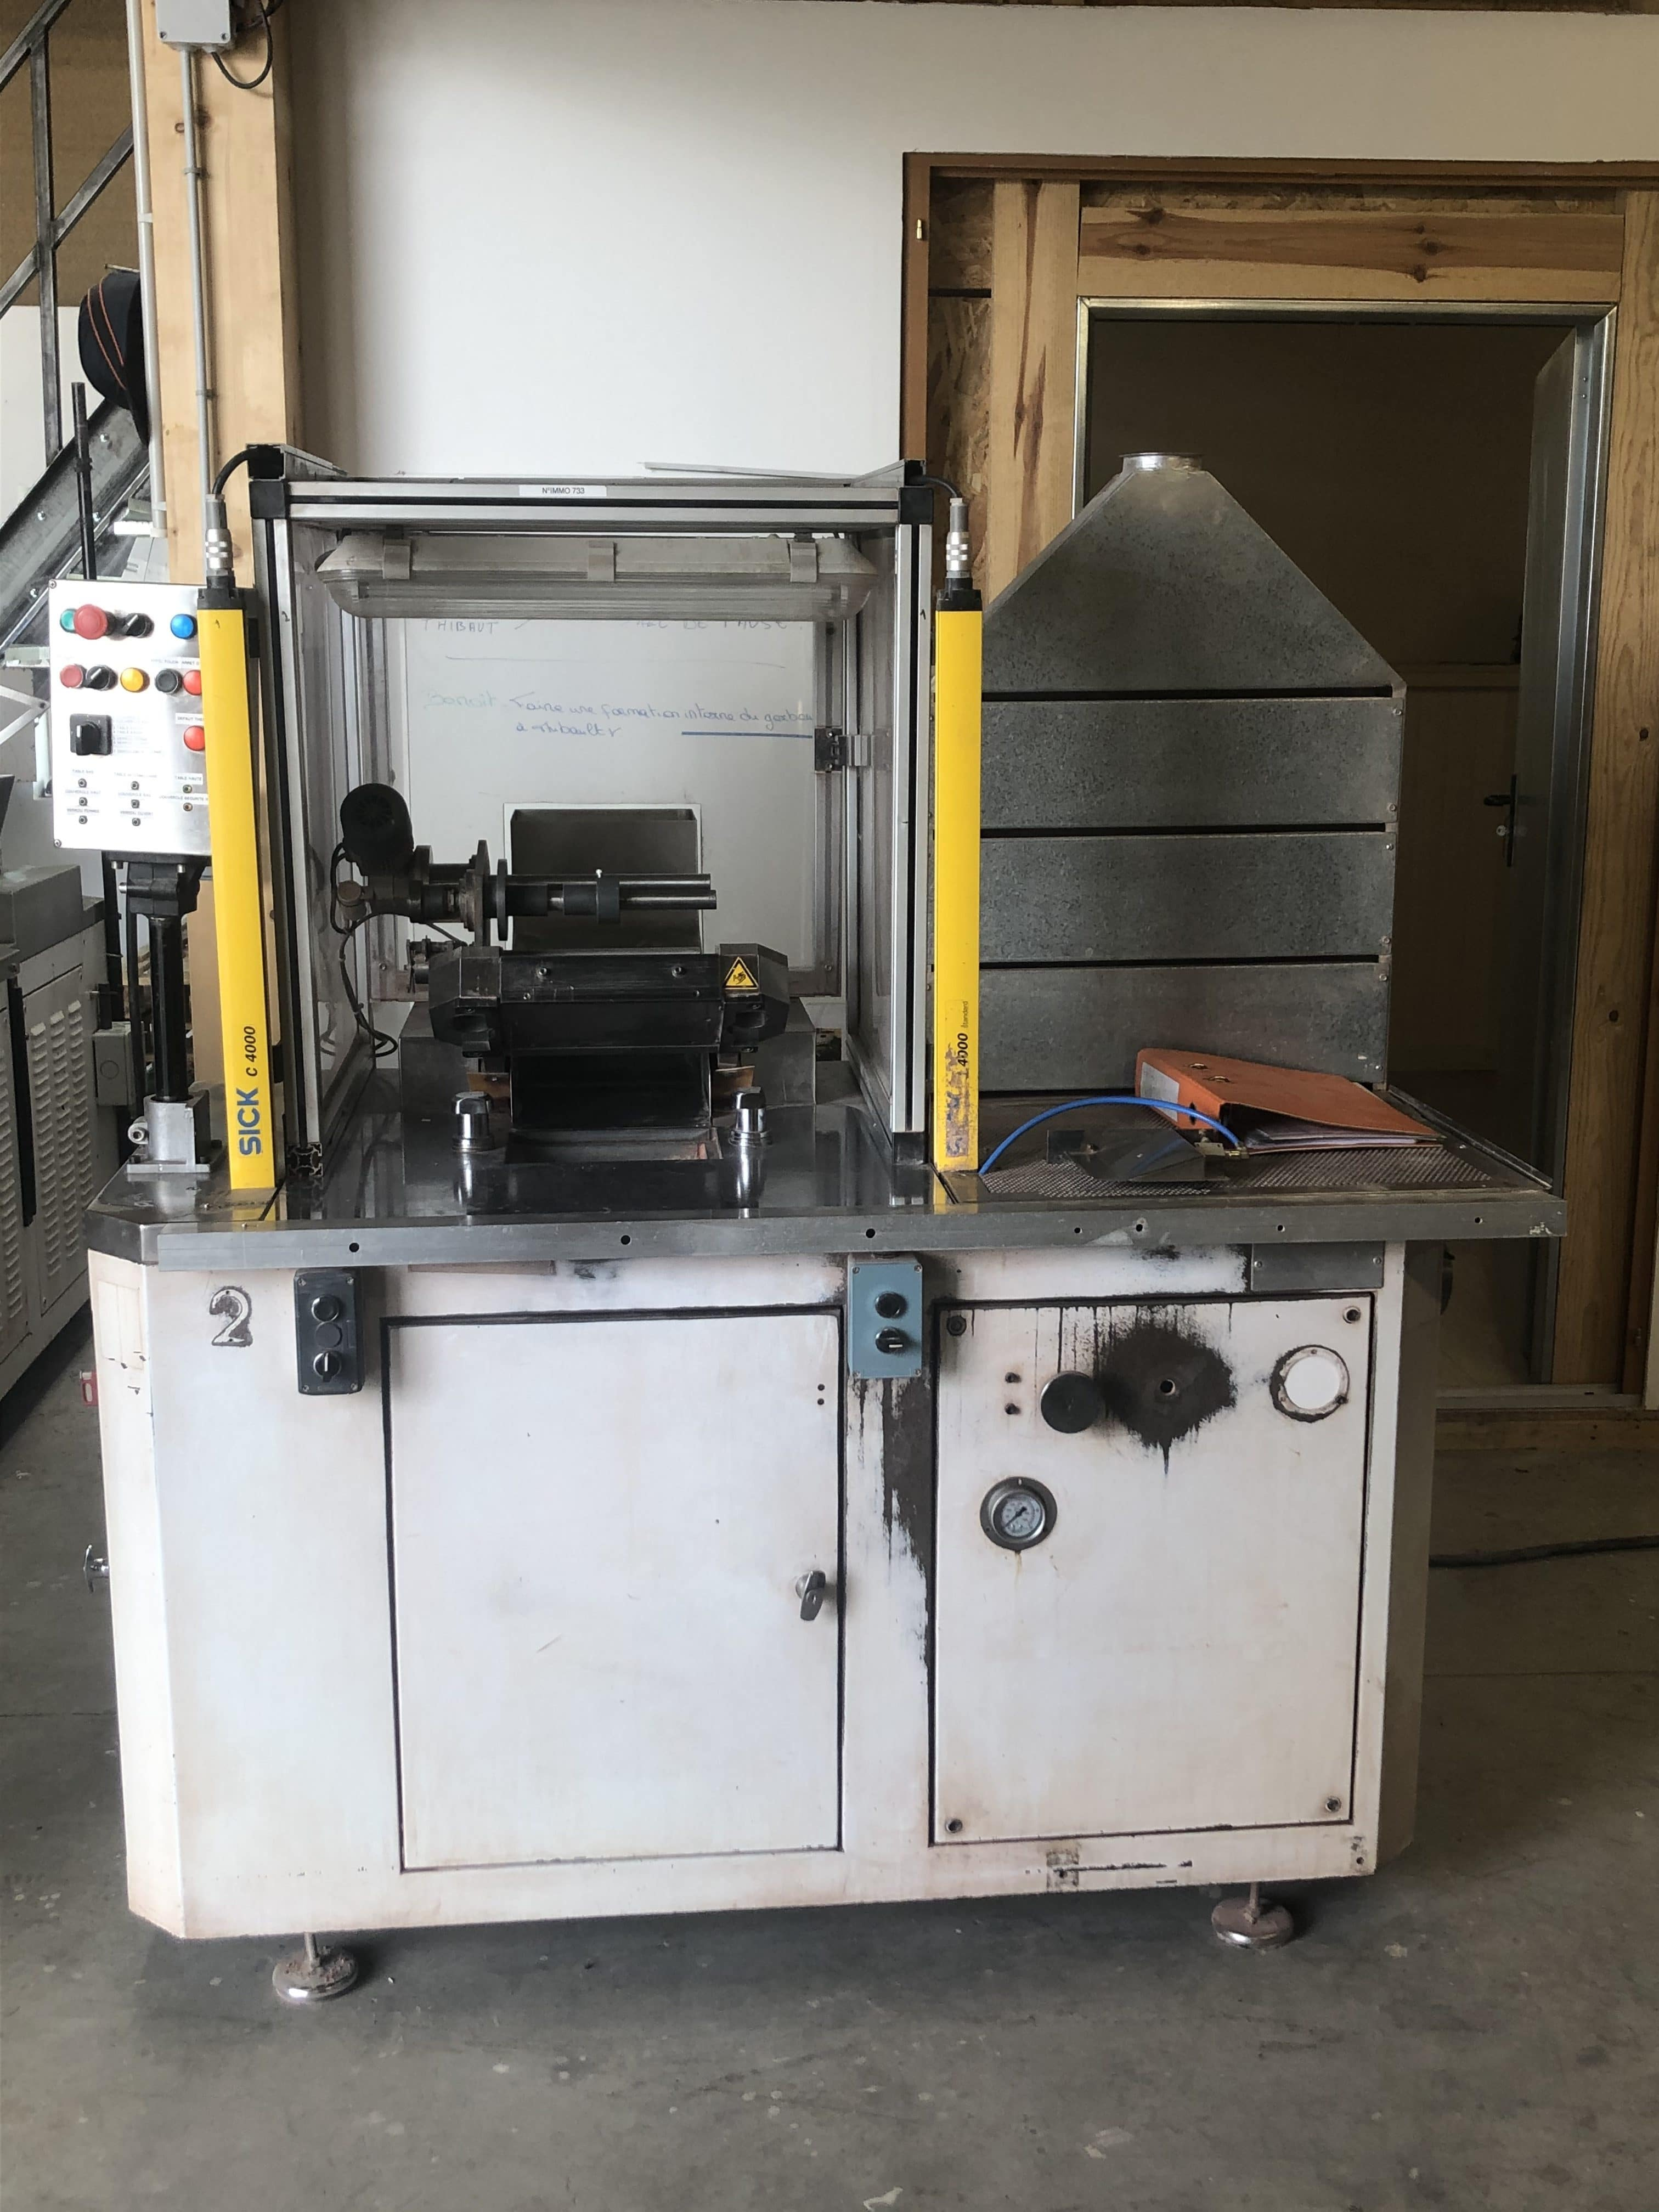 Vetraco - Compactor / press for cosmetic powders